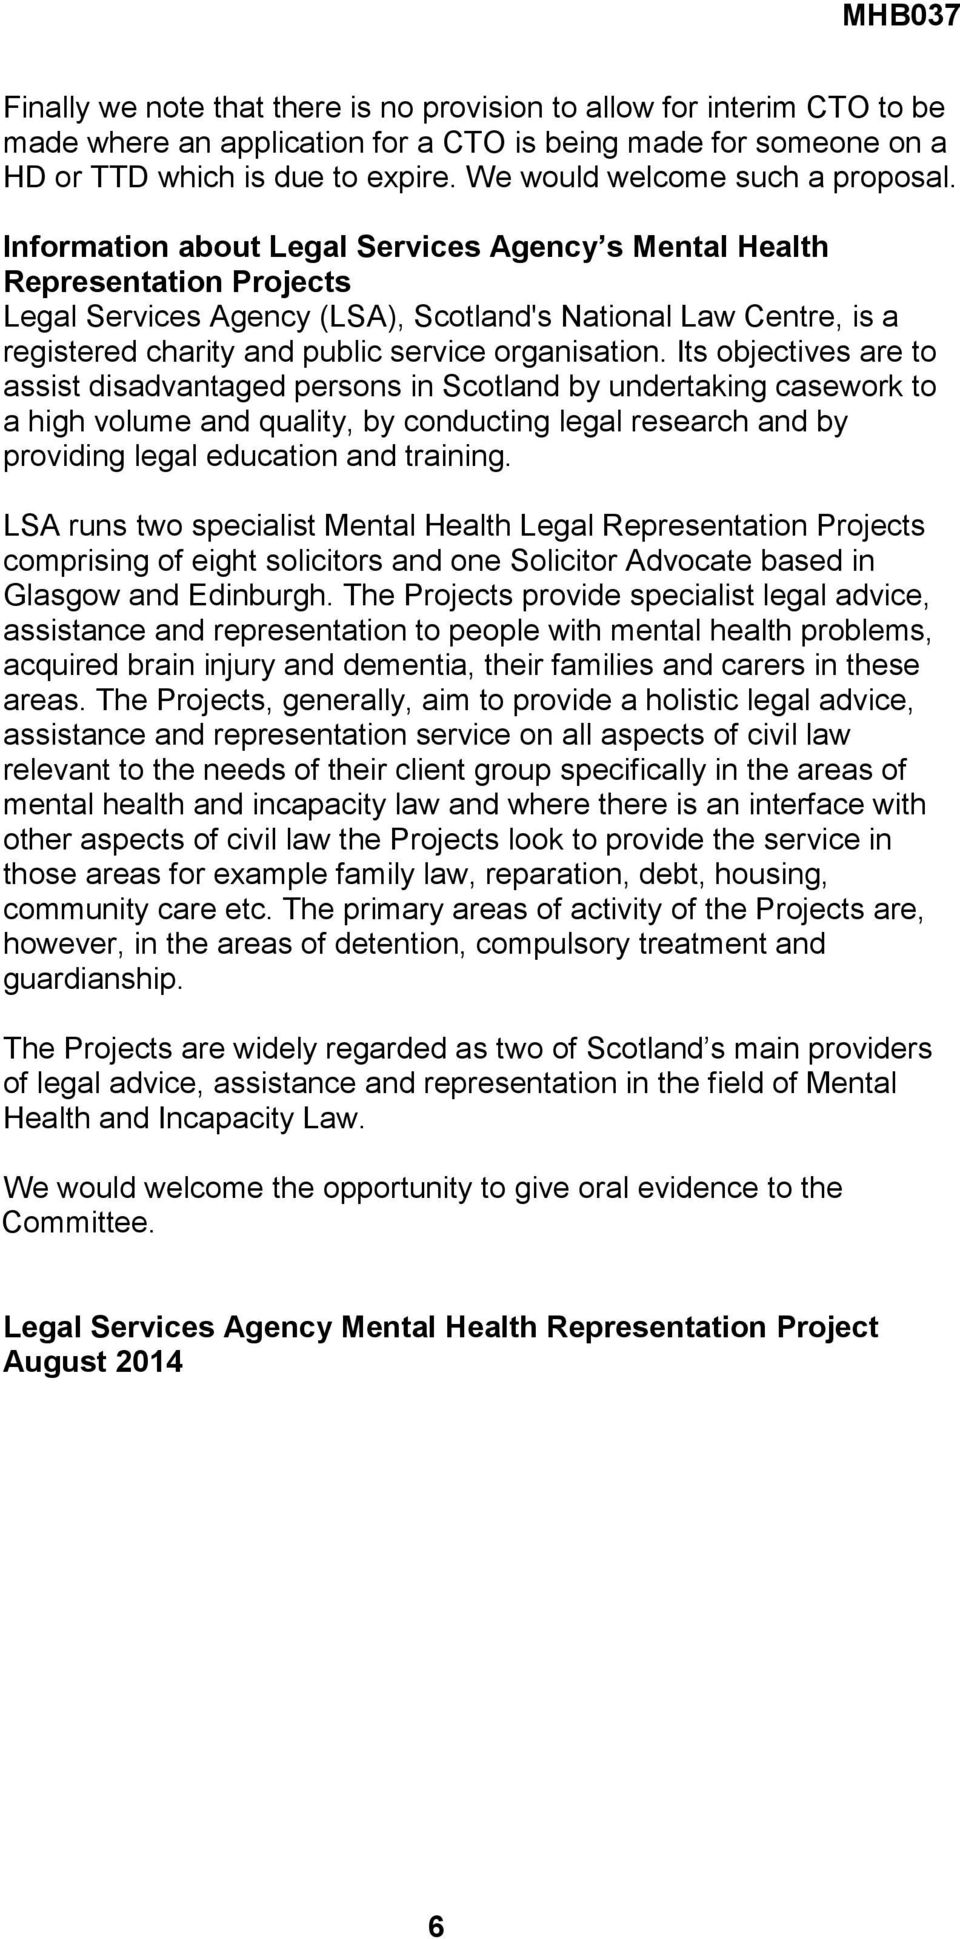 Information about Legal Services Agency s Mental Health Representation Projects Legal Services Agency (LSA), Scotland's National Law Centre, is a registered charity and public service organisation.